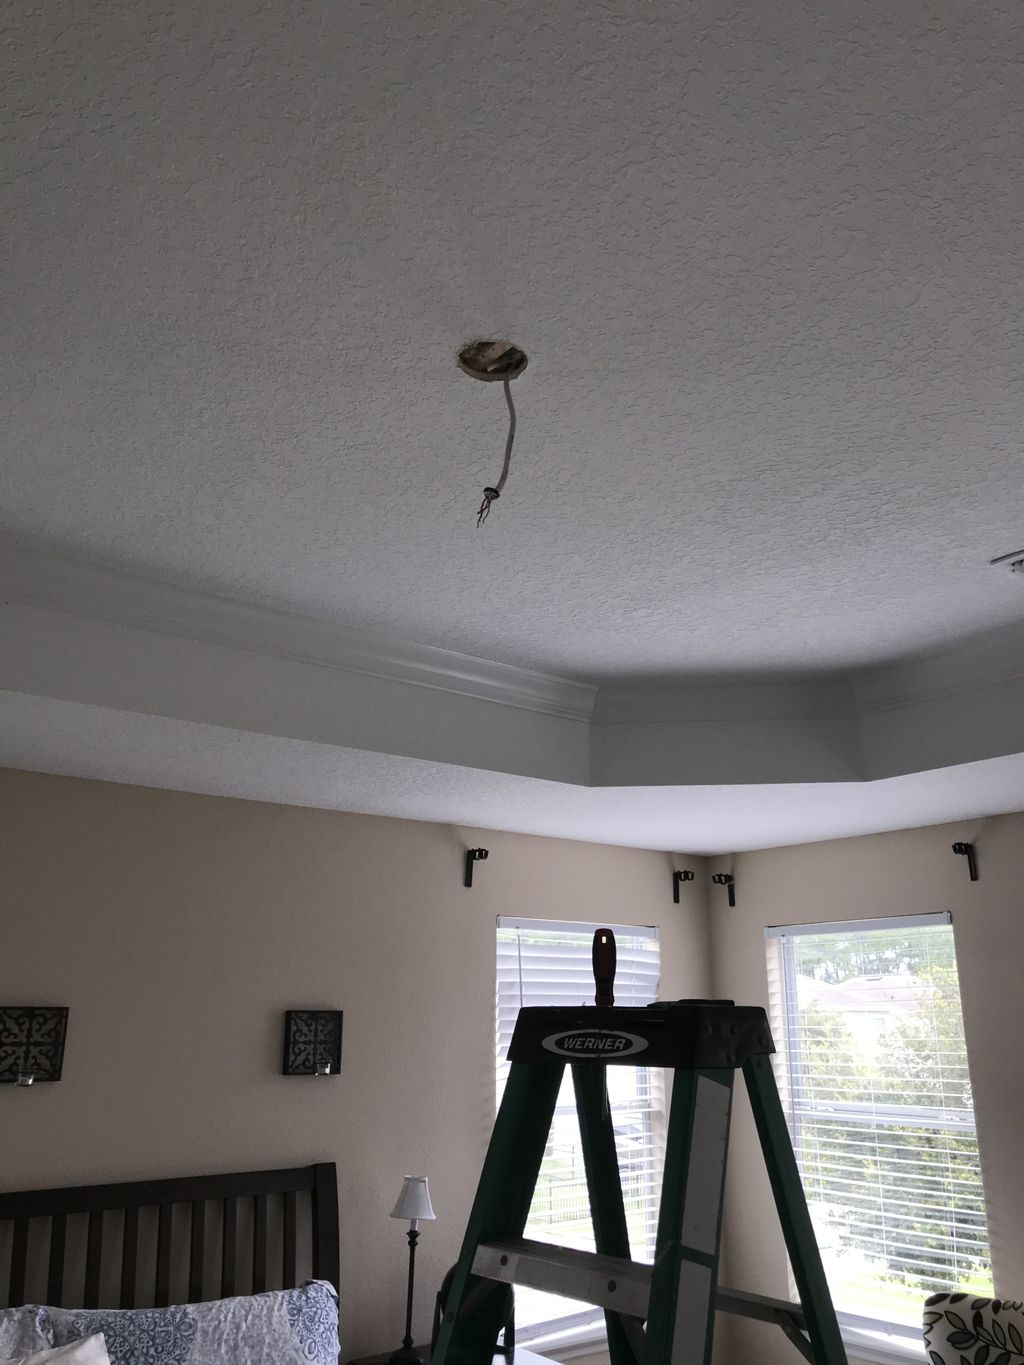 Fan with light remote control Ensambly and Instalation